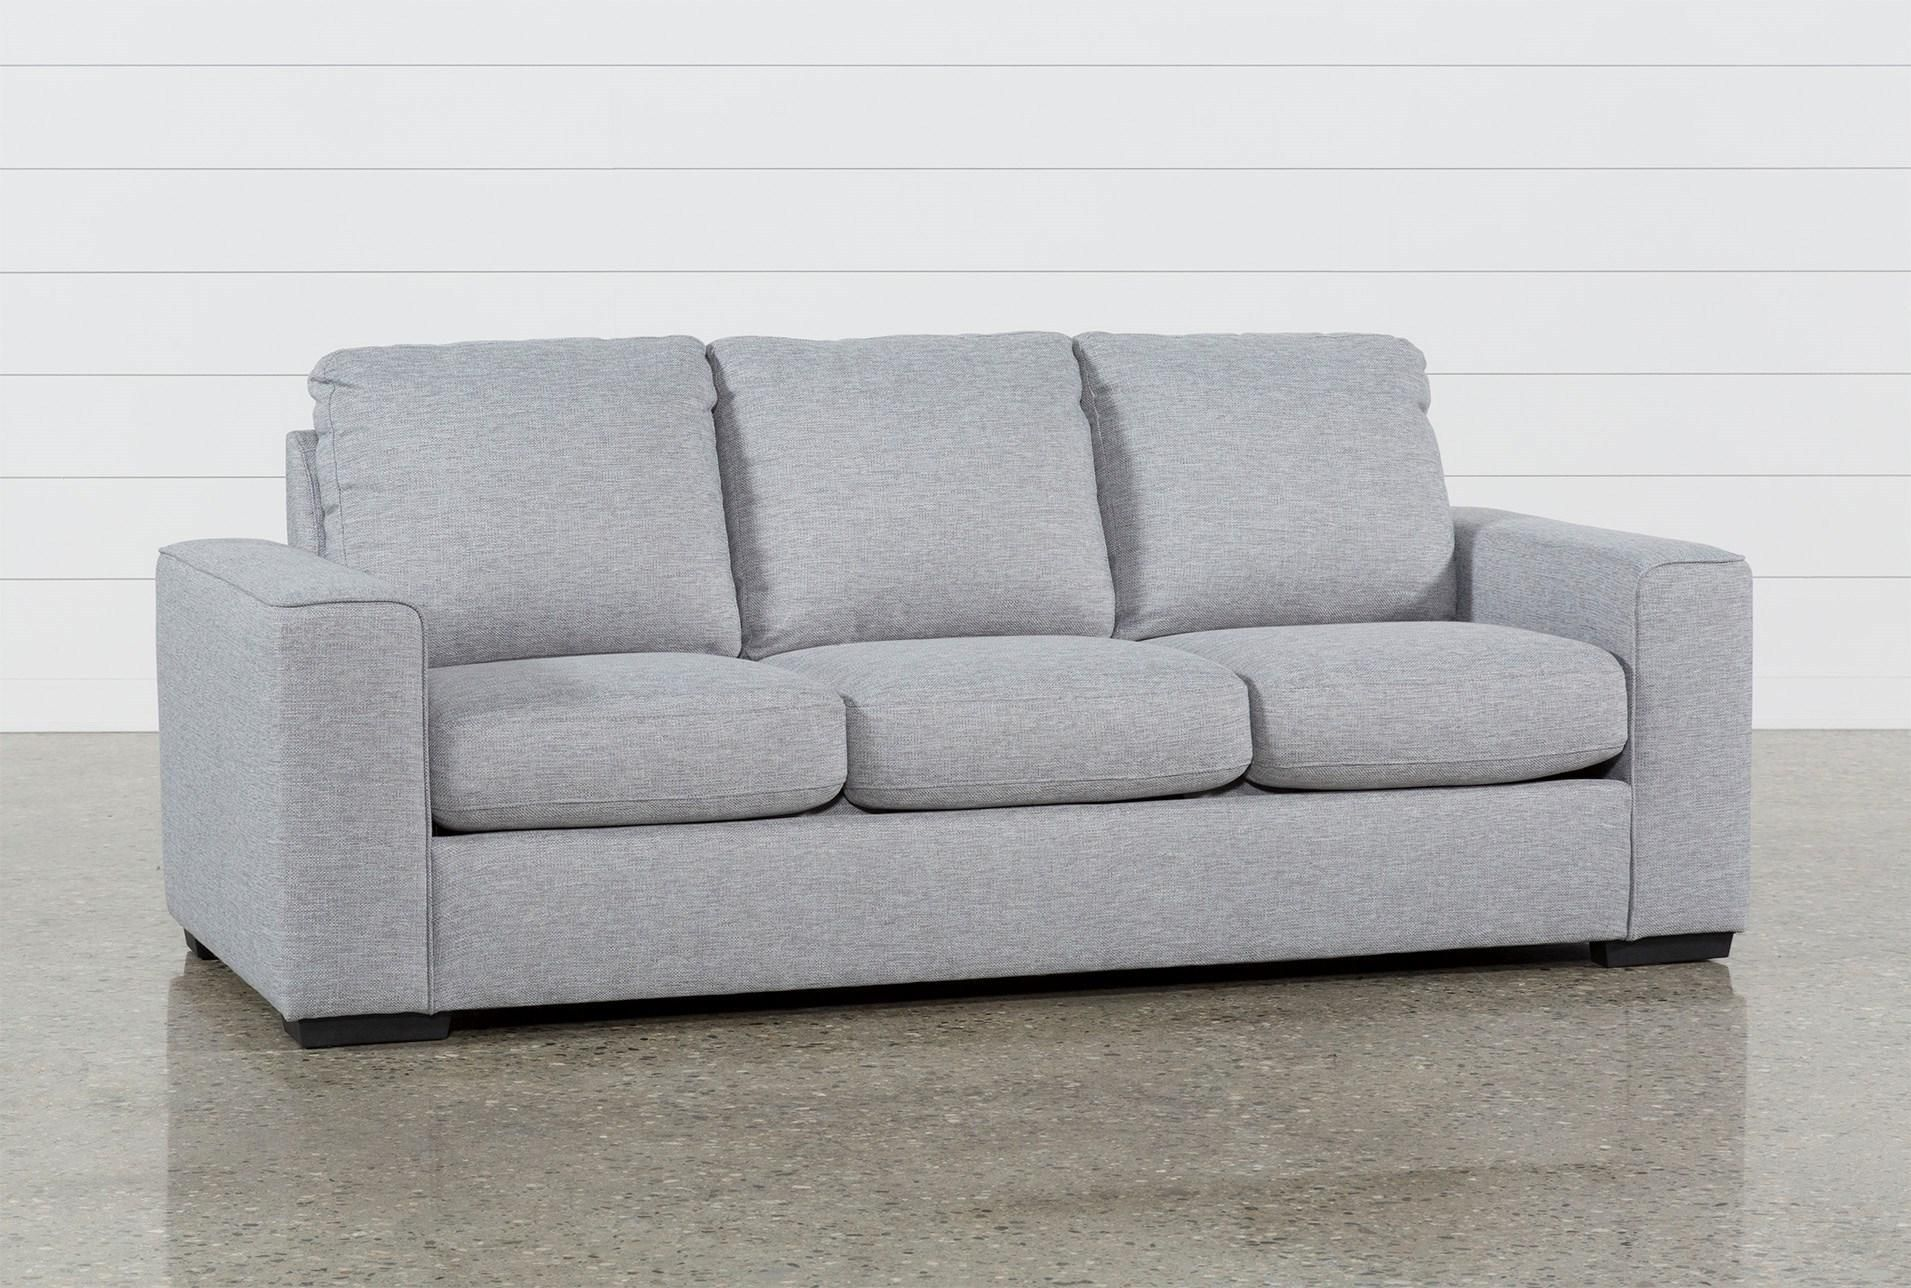 Lucy Grey Queen Sleeper Sofa How To Make Sofa Bed Modern Sleeper Sofa